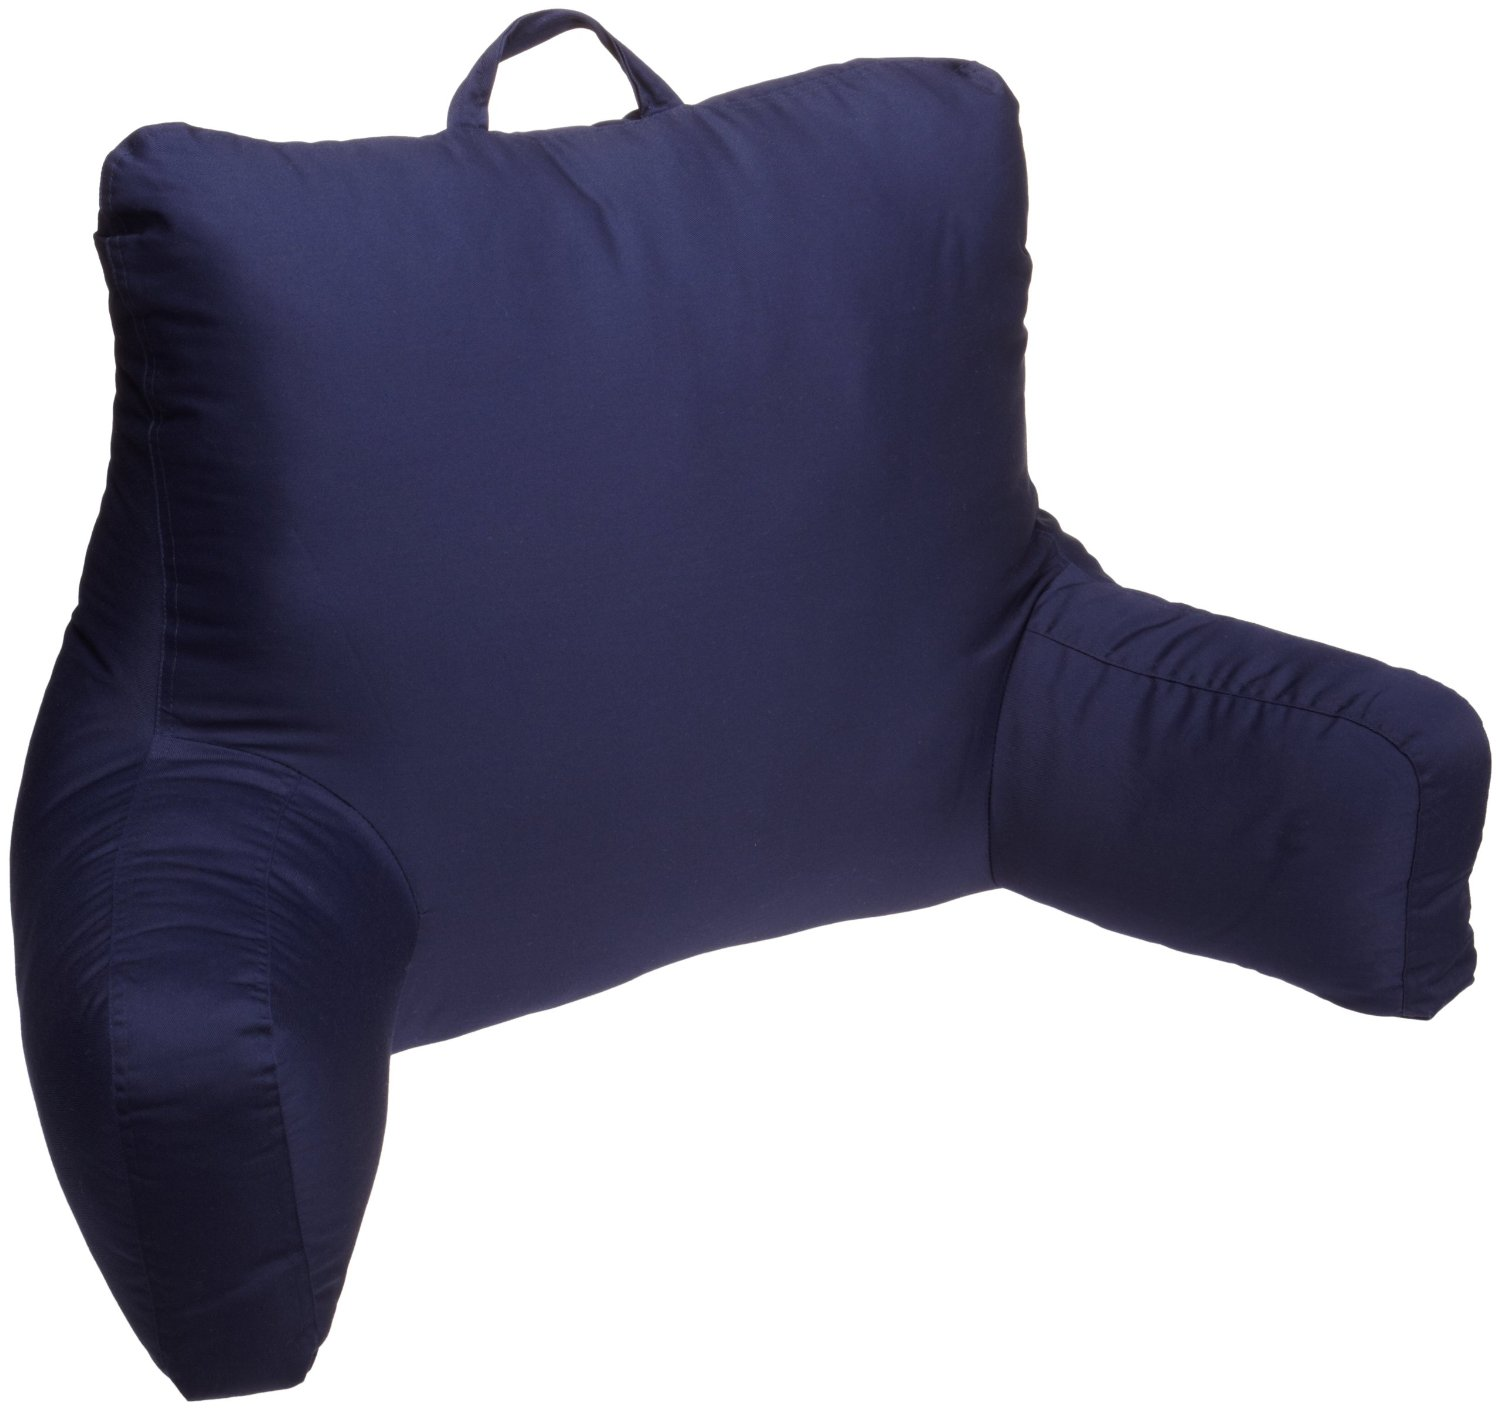 Alluring Backrest Pillow with Arms for Living Room Interior Ideas: Dark Blue Backrest Pillow With Arms